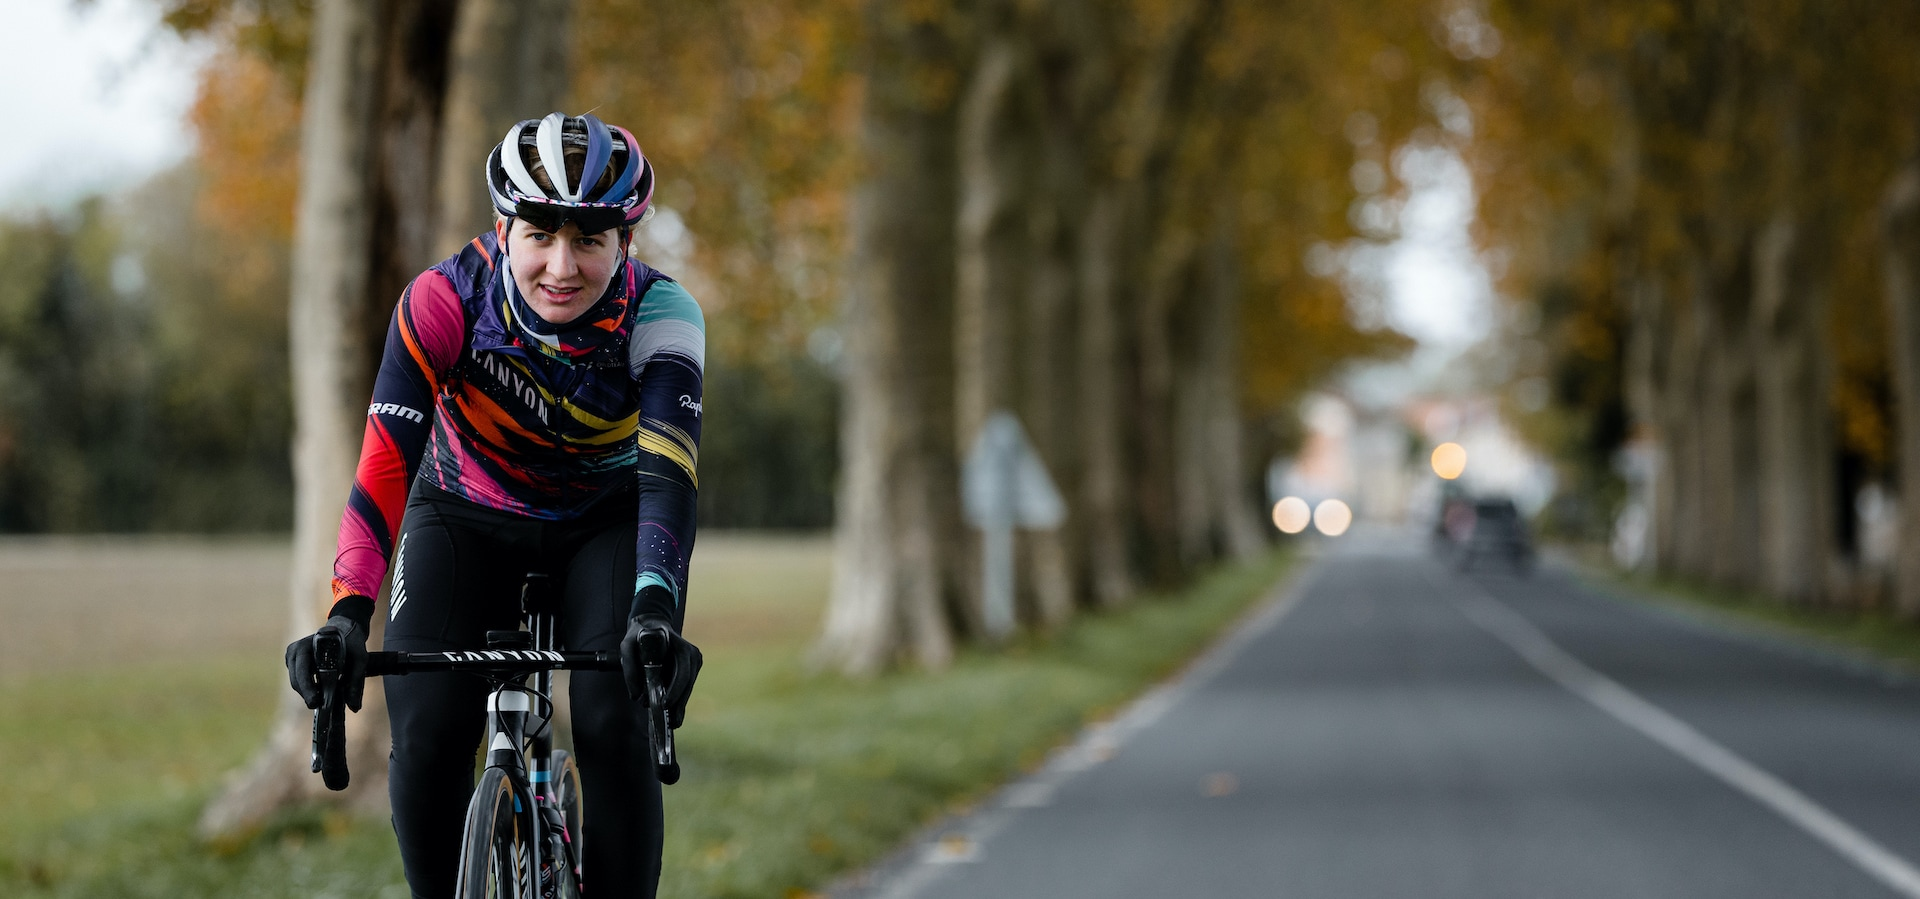 Her race was cancelled at the last minute, so she rode 1,000 km home